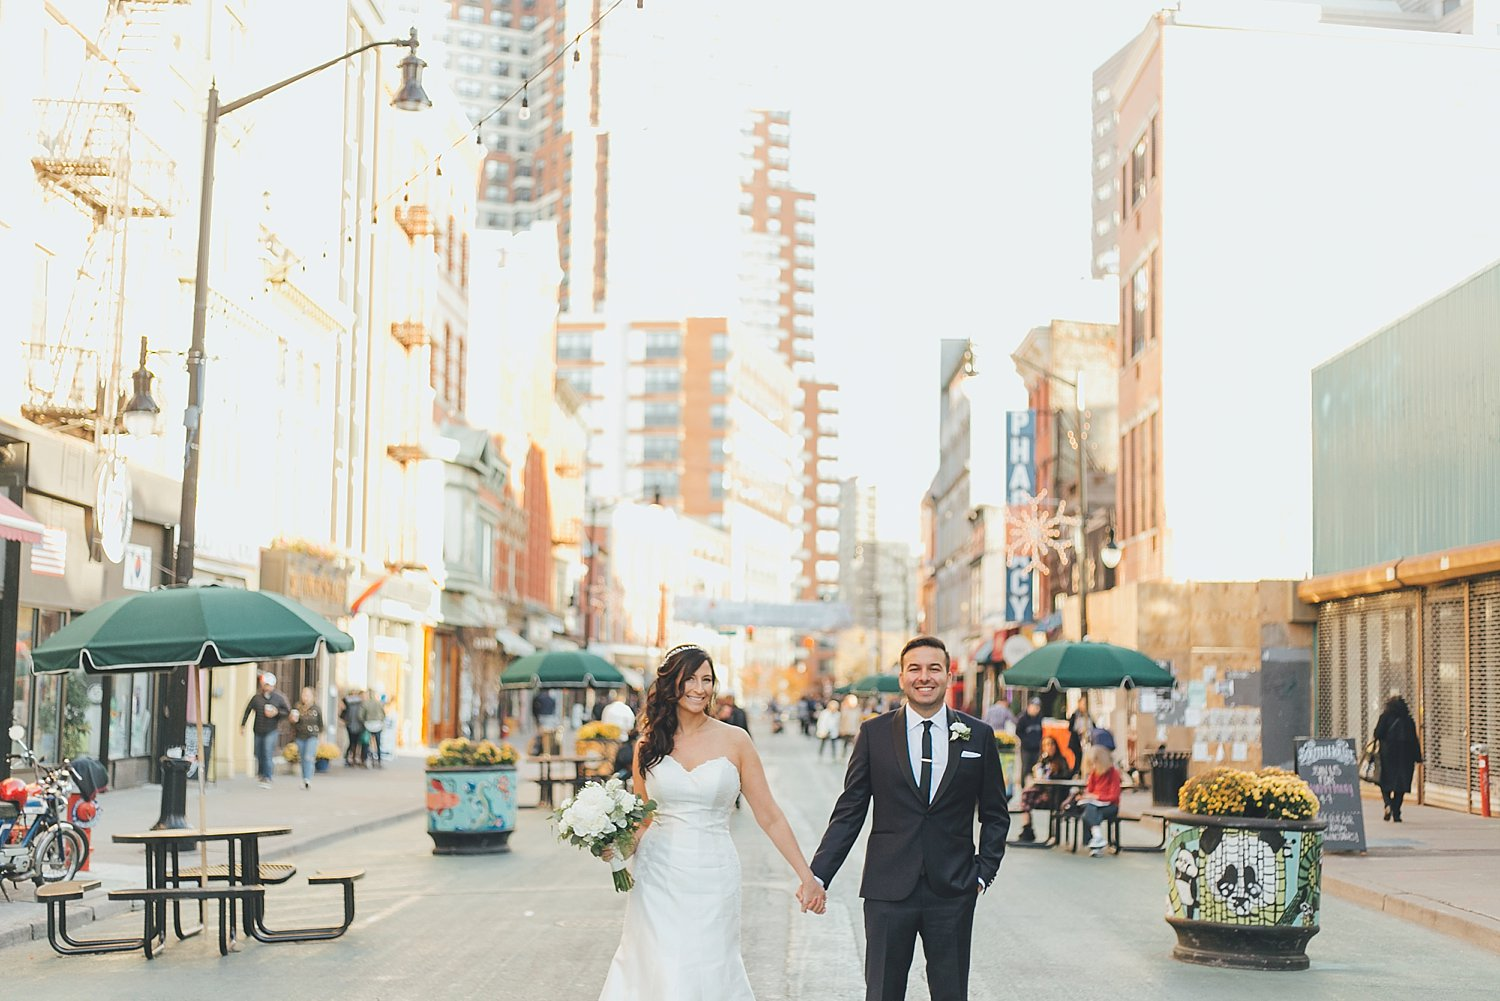 nyc-wedding-photography-nj-tri-state-cinematography-intothestory-by-moo-jae_0316.jpg